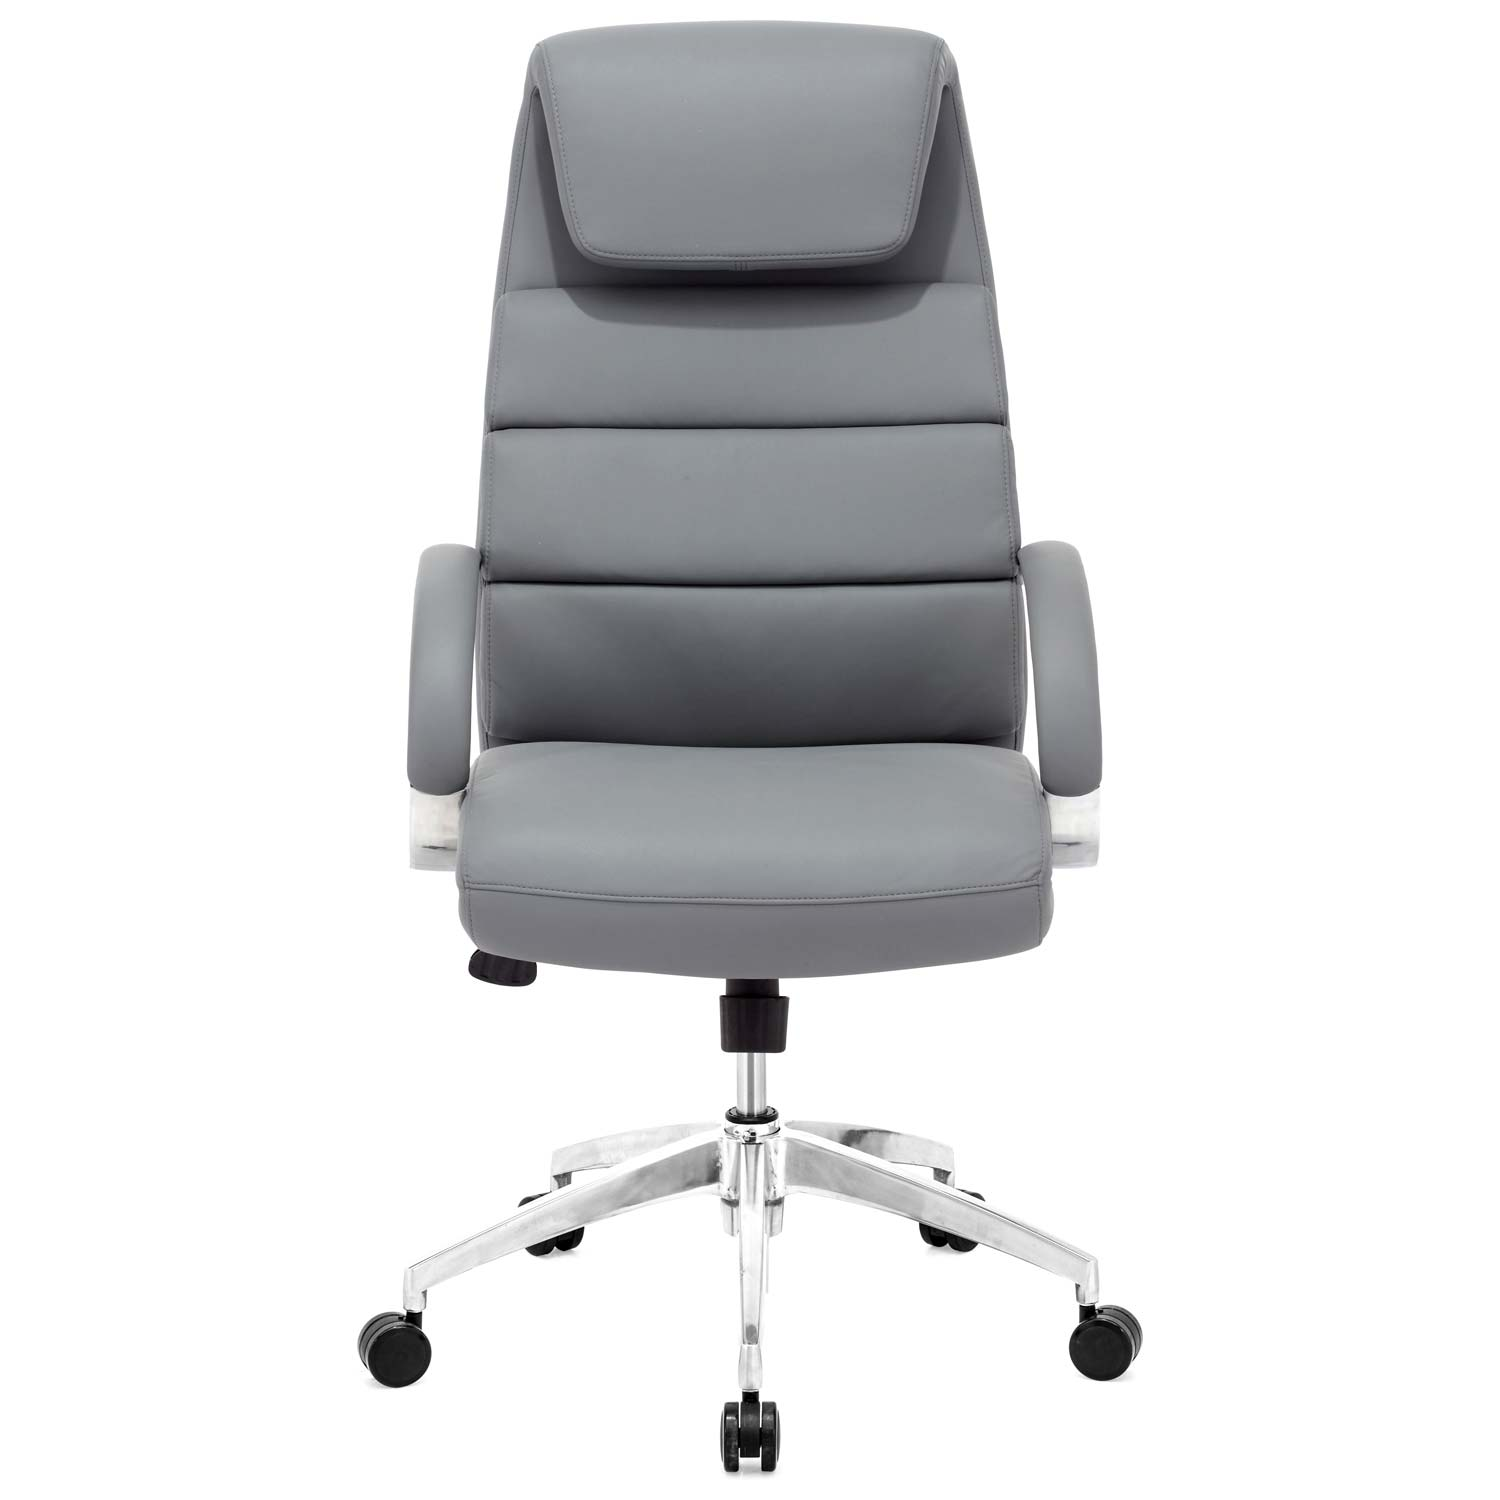 Lider Comfort Office - Chrome Steel, Gray - ZM-205317